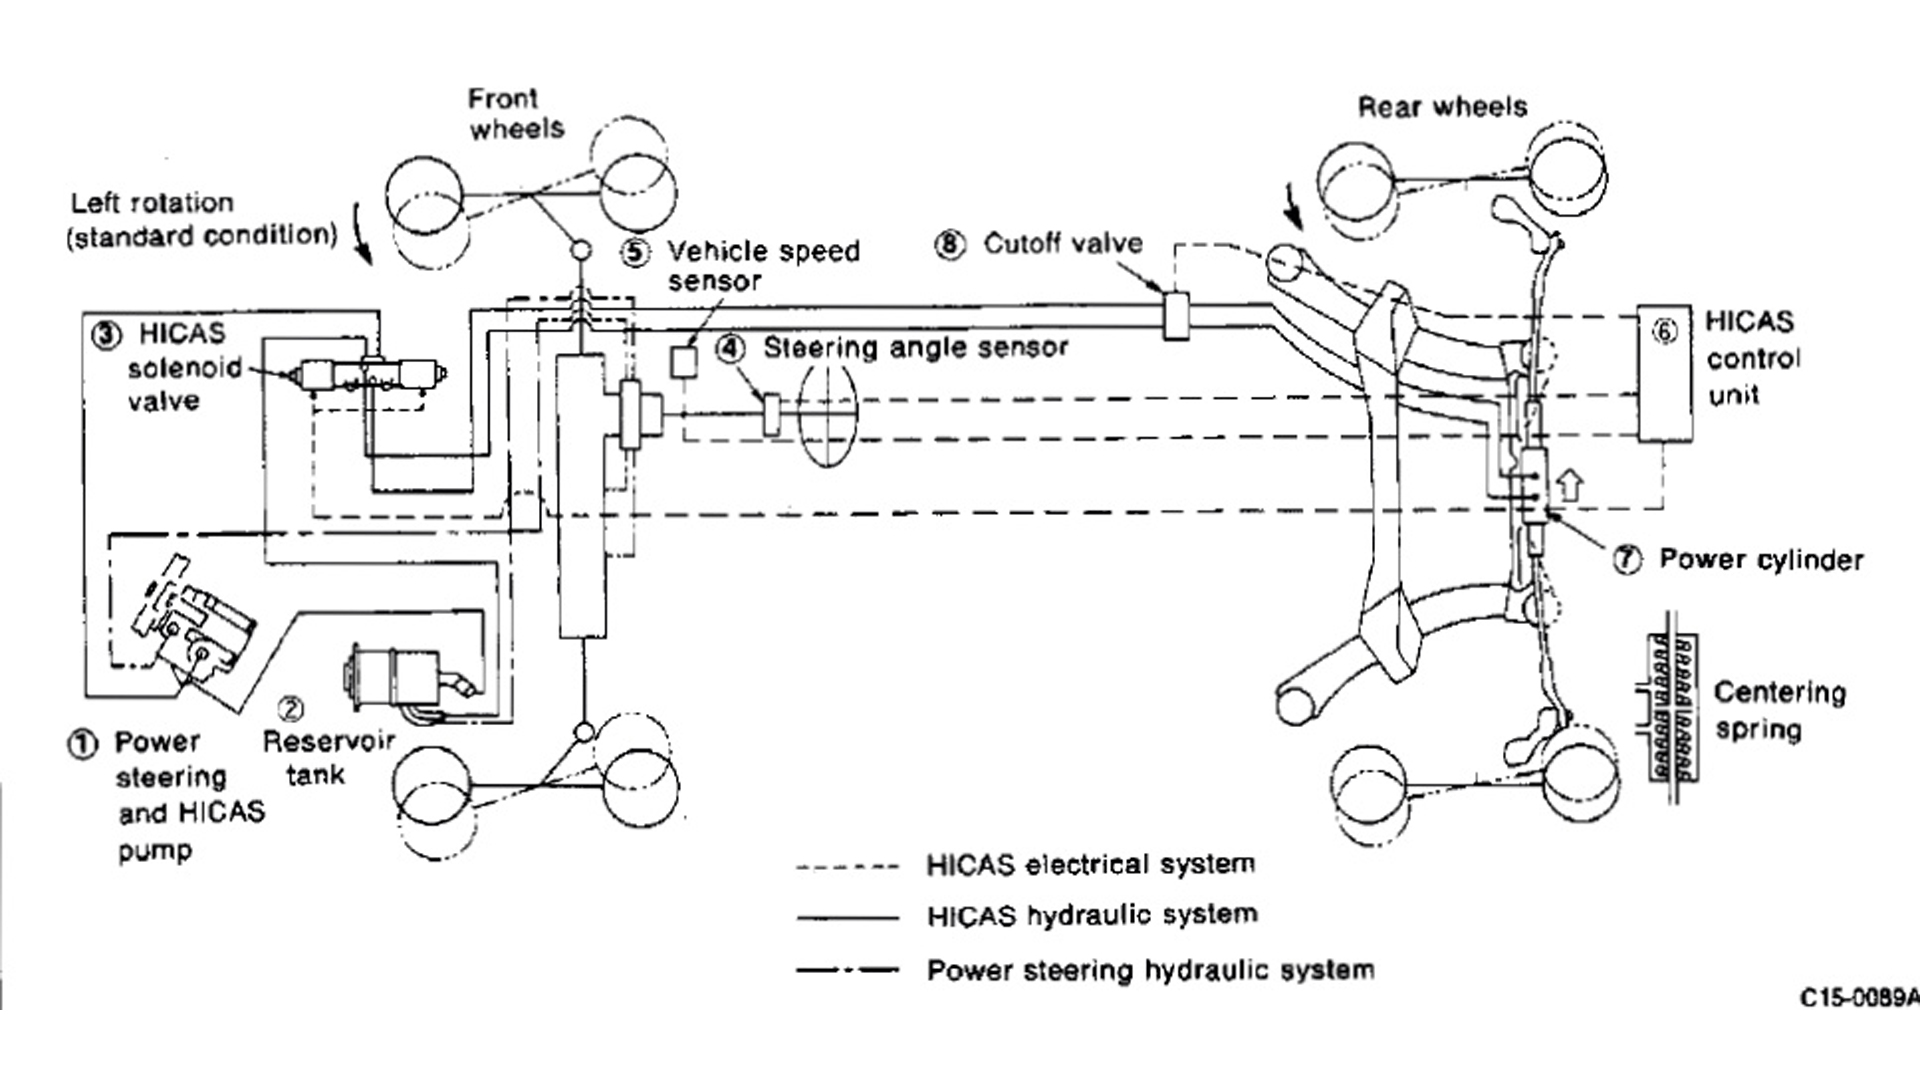 Nissan's technical diagram of HICAS